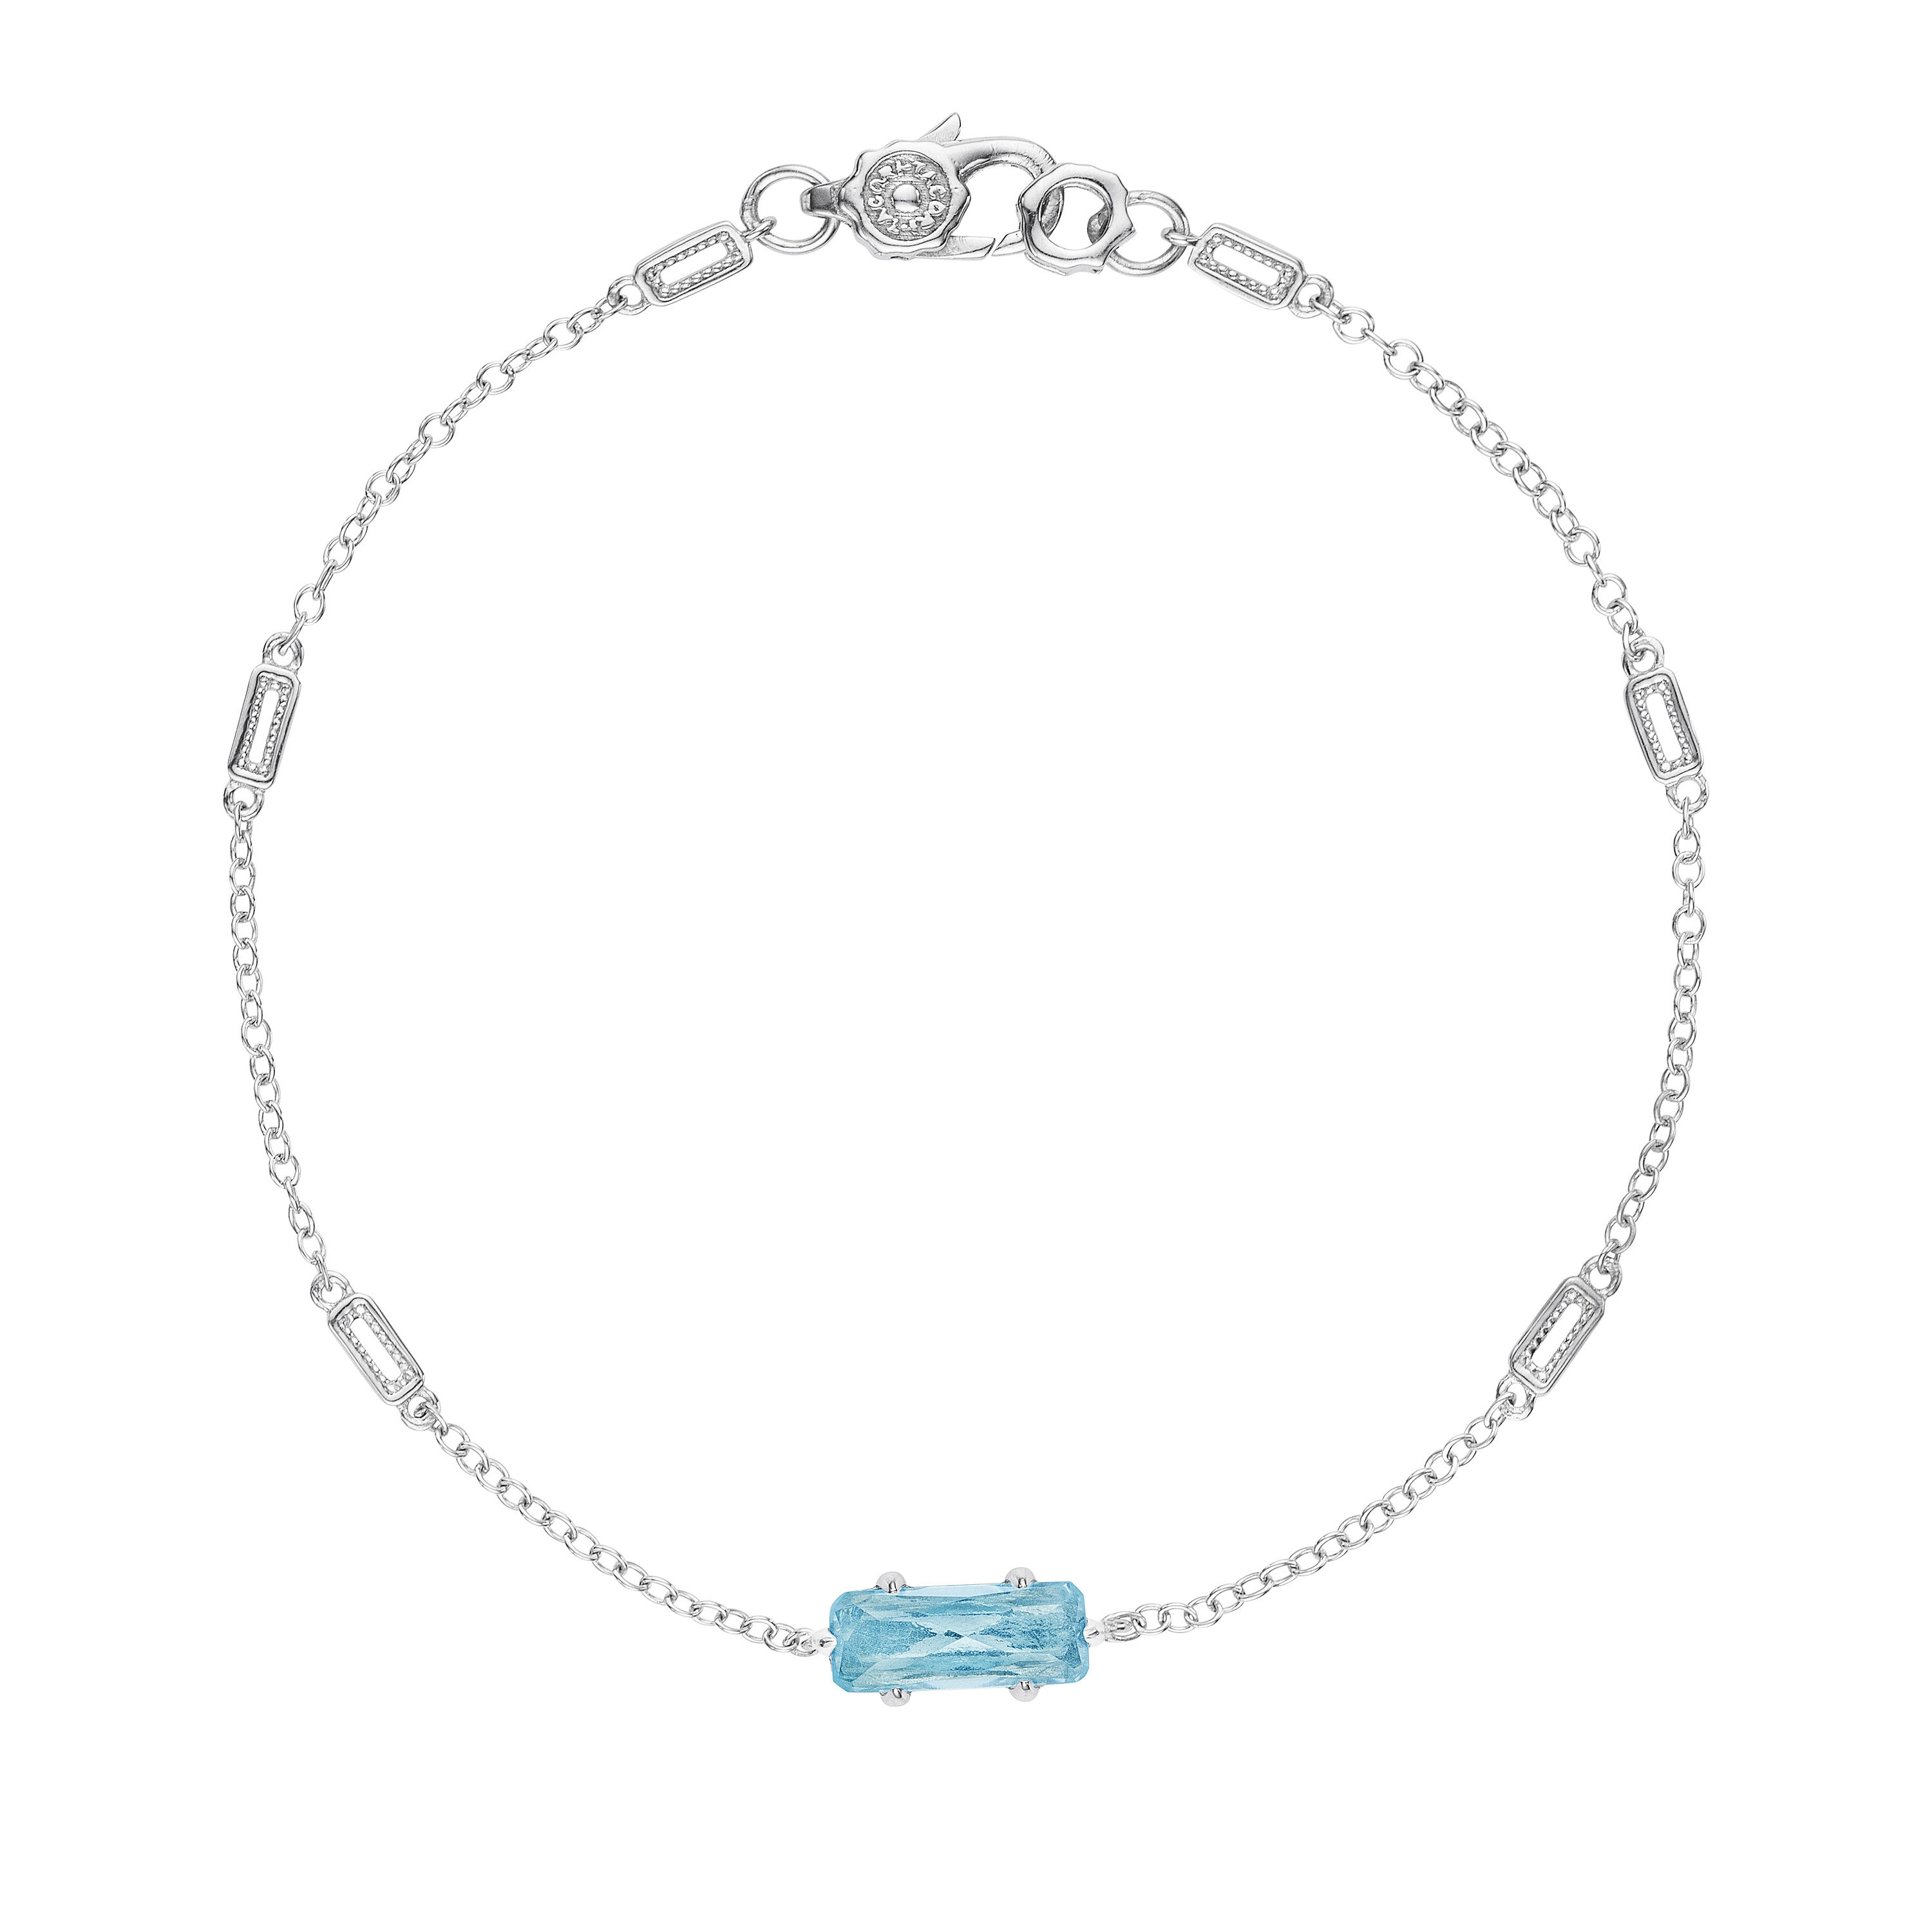 SB22502 Tacori Solitaire Emerald Cut Gem Bracelet with Sky Blue Topaz